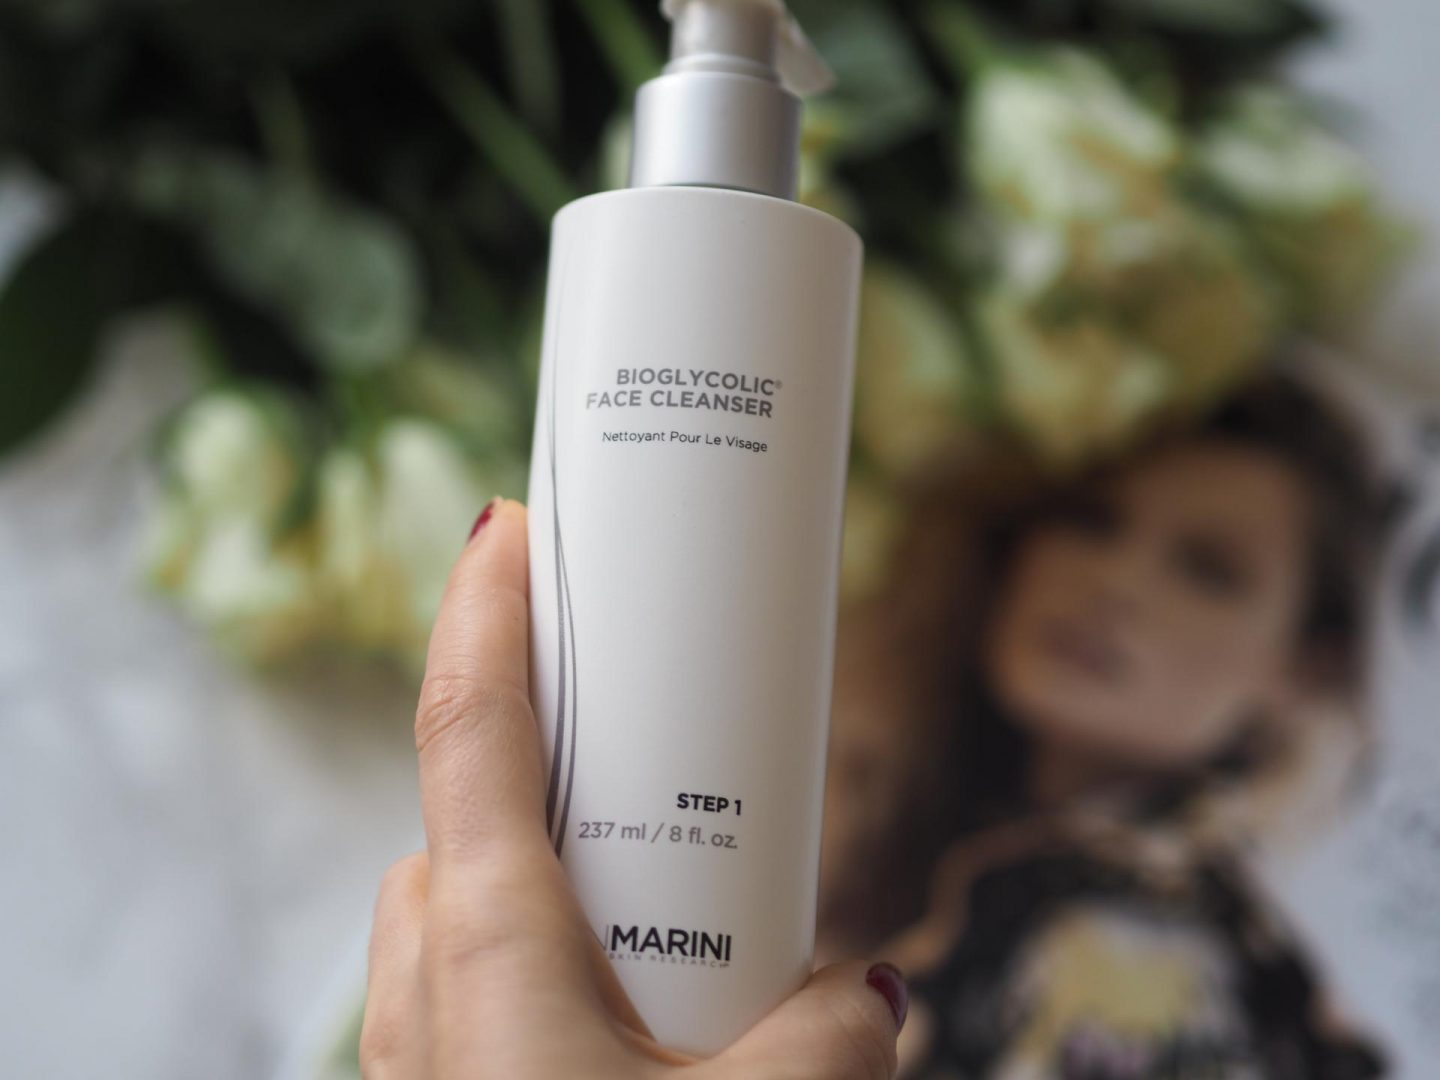 Winter Skincare - Product: Jan Marini Bioglycolic Face Cleanser